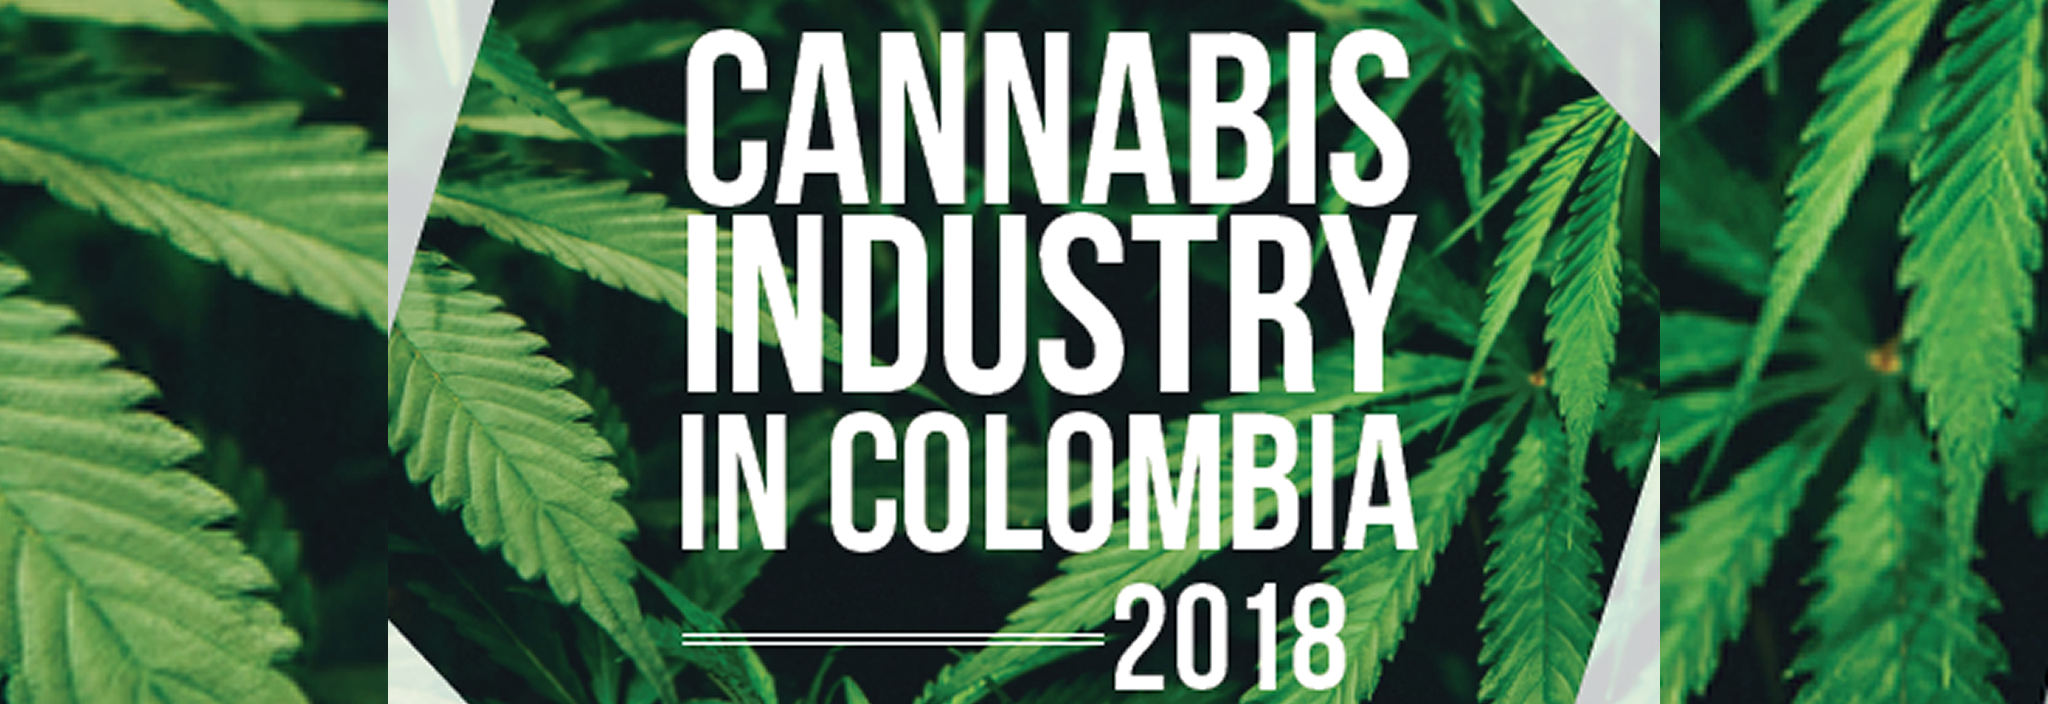 CANNABIS INDUSTRY IN COLOMBIA 2018